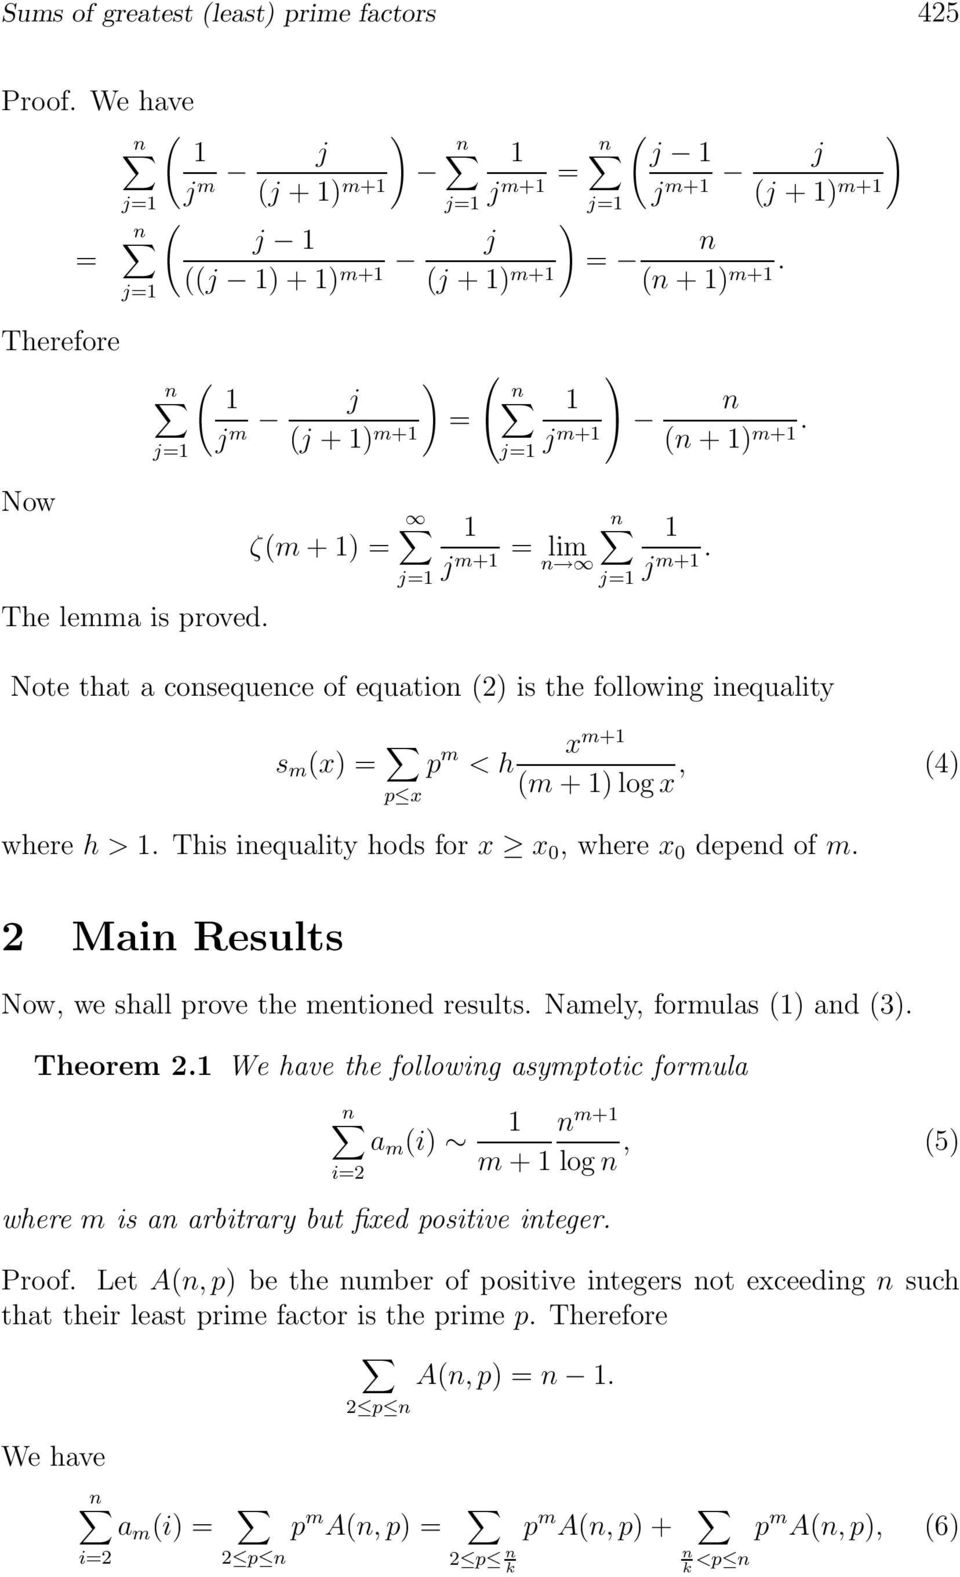 2 Mai Results Now, we shall prove the metioed results. Namely, formulas ( ad (3. Theorem 2. We have the followig asymptotic formula where m is a arbitrary but fixed positive iteger.